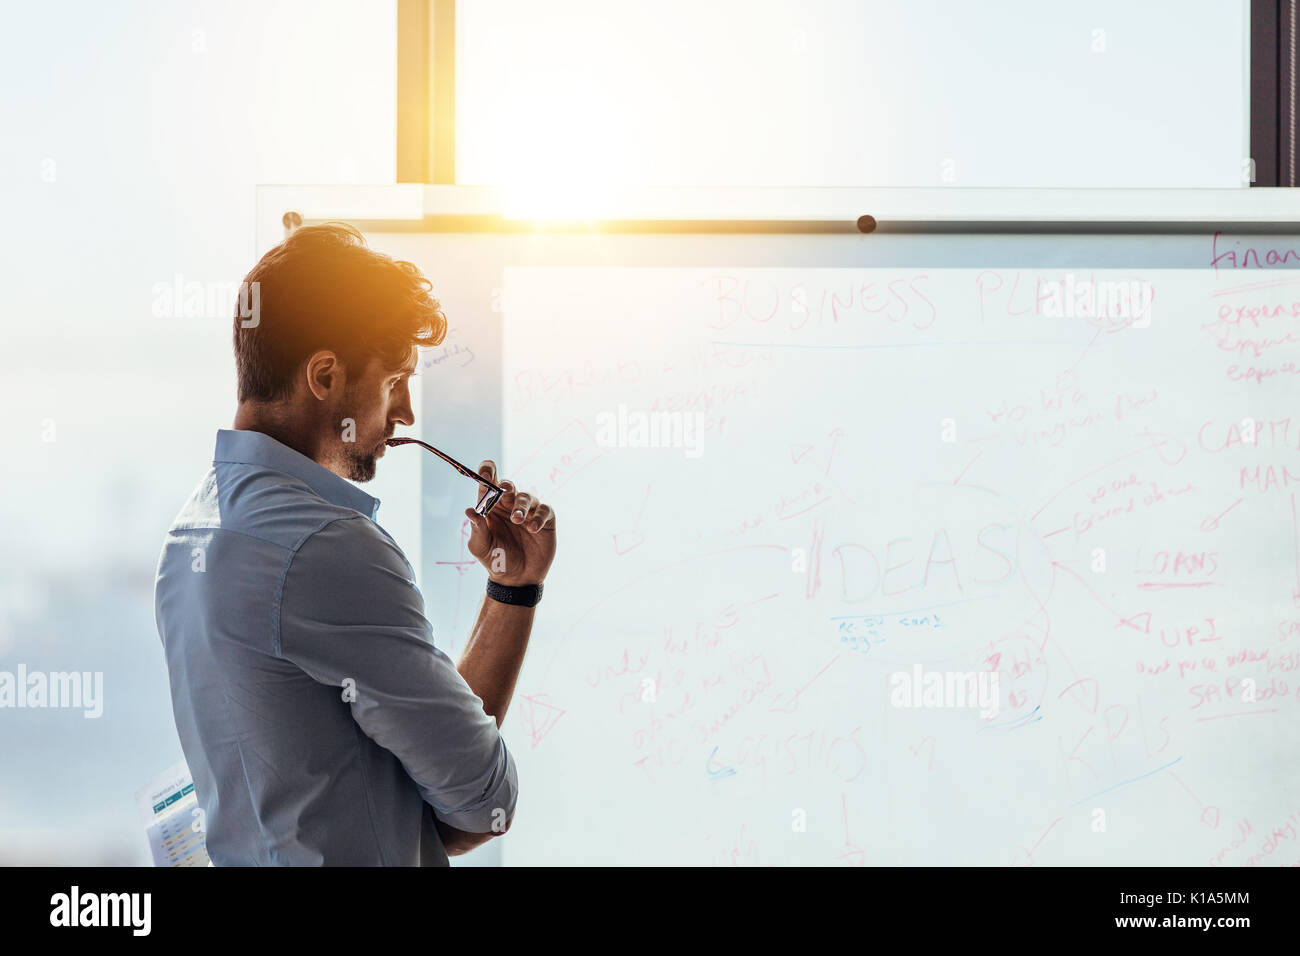 Business investor in deep thought looking at the business ideas written on the whiteboard. Businessman thinking while holding his spectacles to mouth - Stock Image